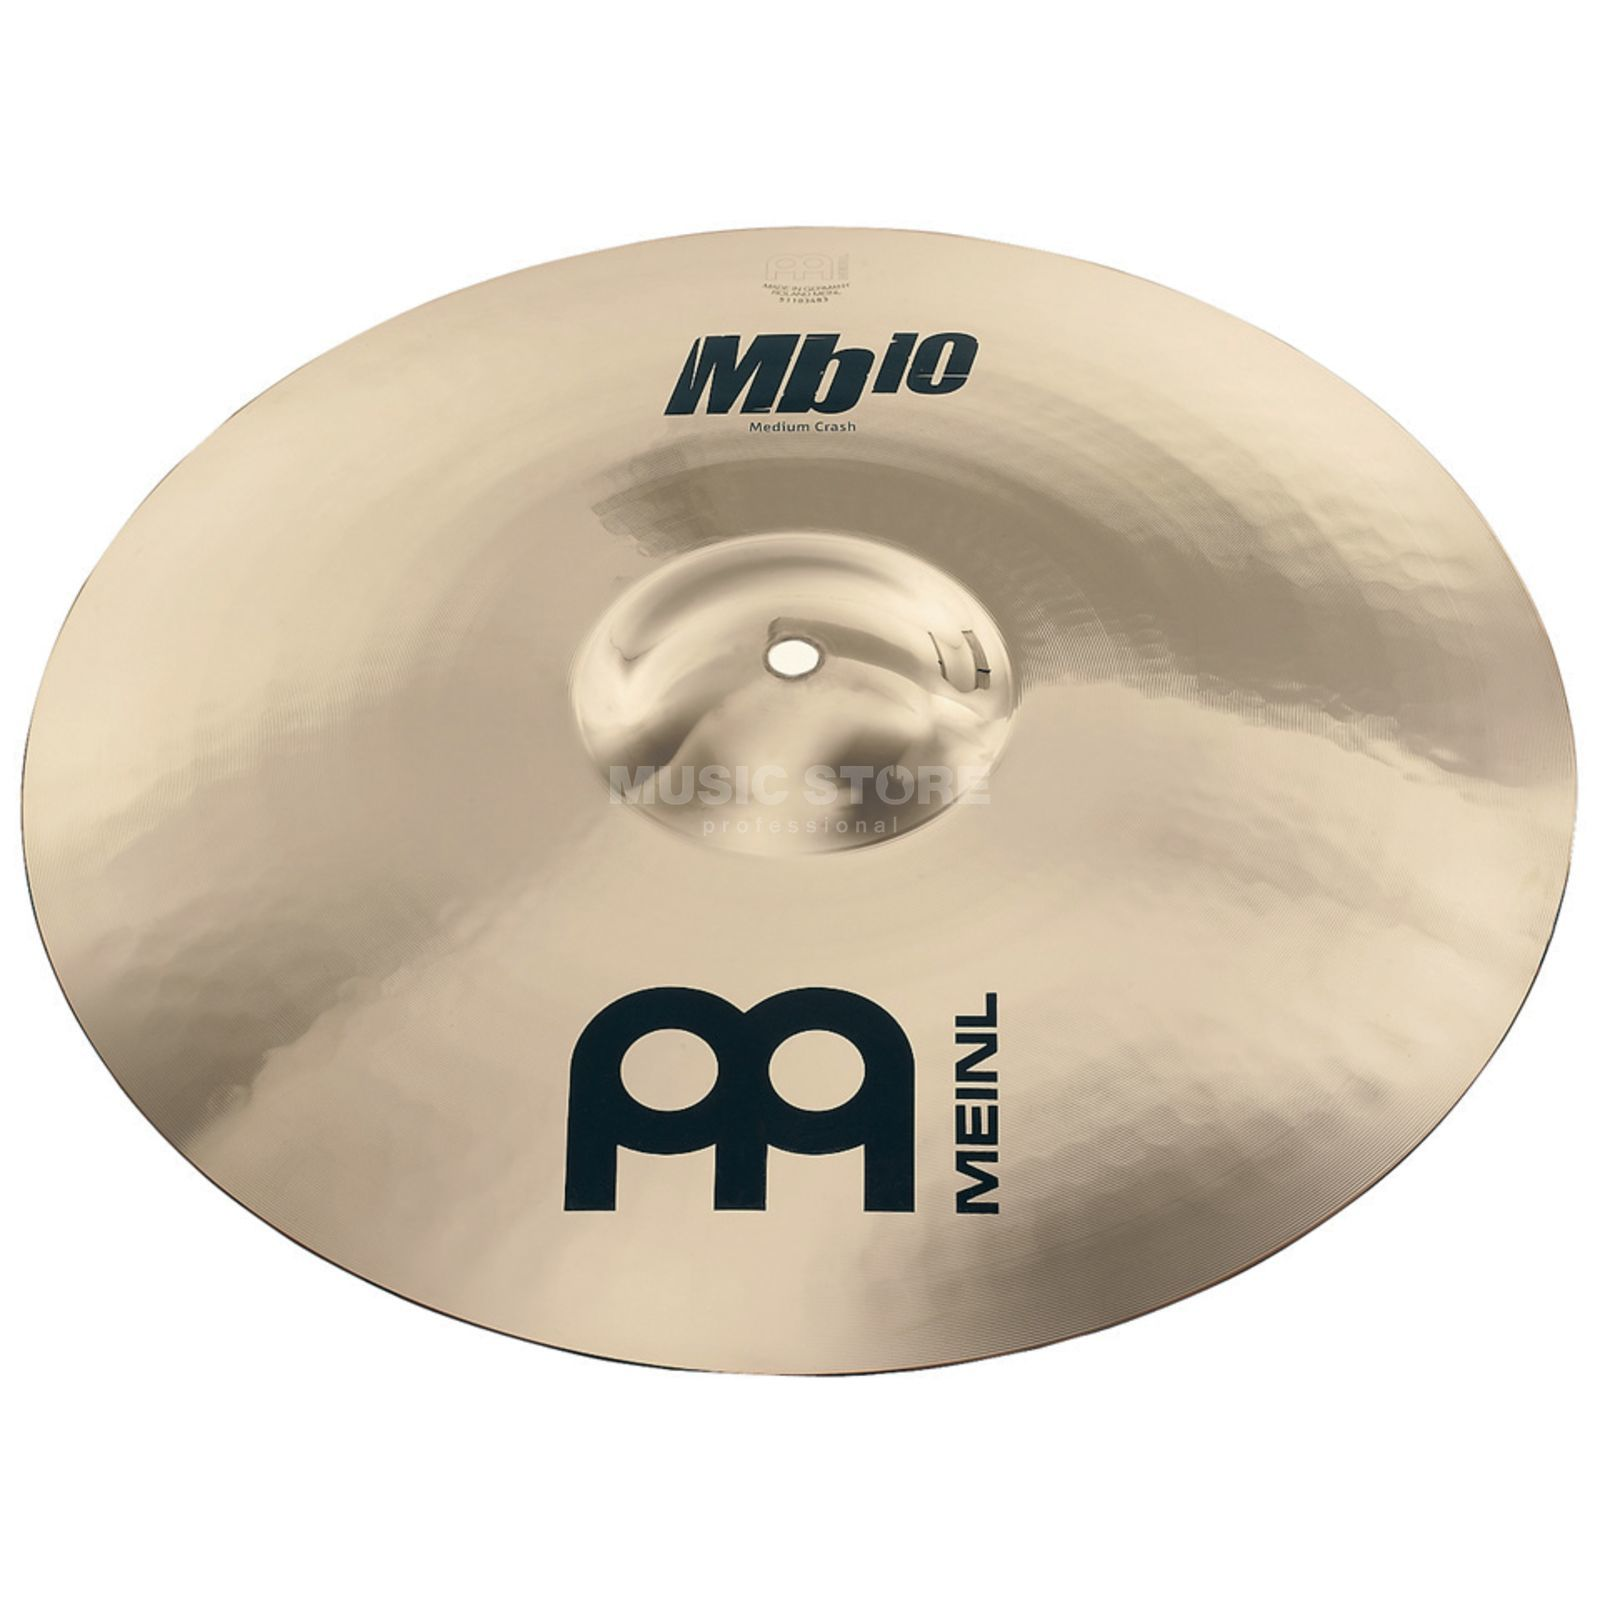 "Meinl MB10 Medium Crash 16"" MB10-16MC-B, Brilliant Finish Productafbeelding"